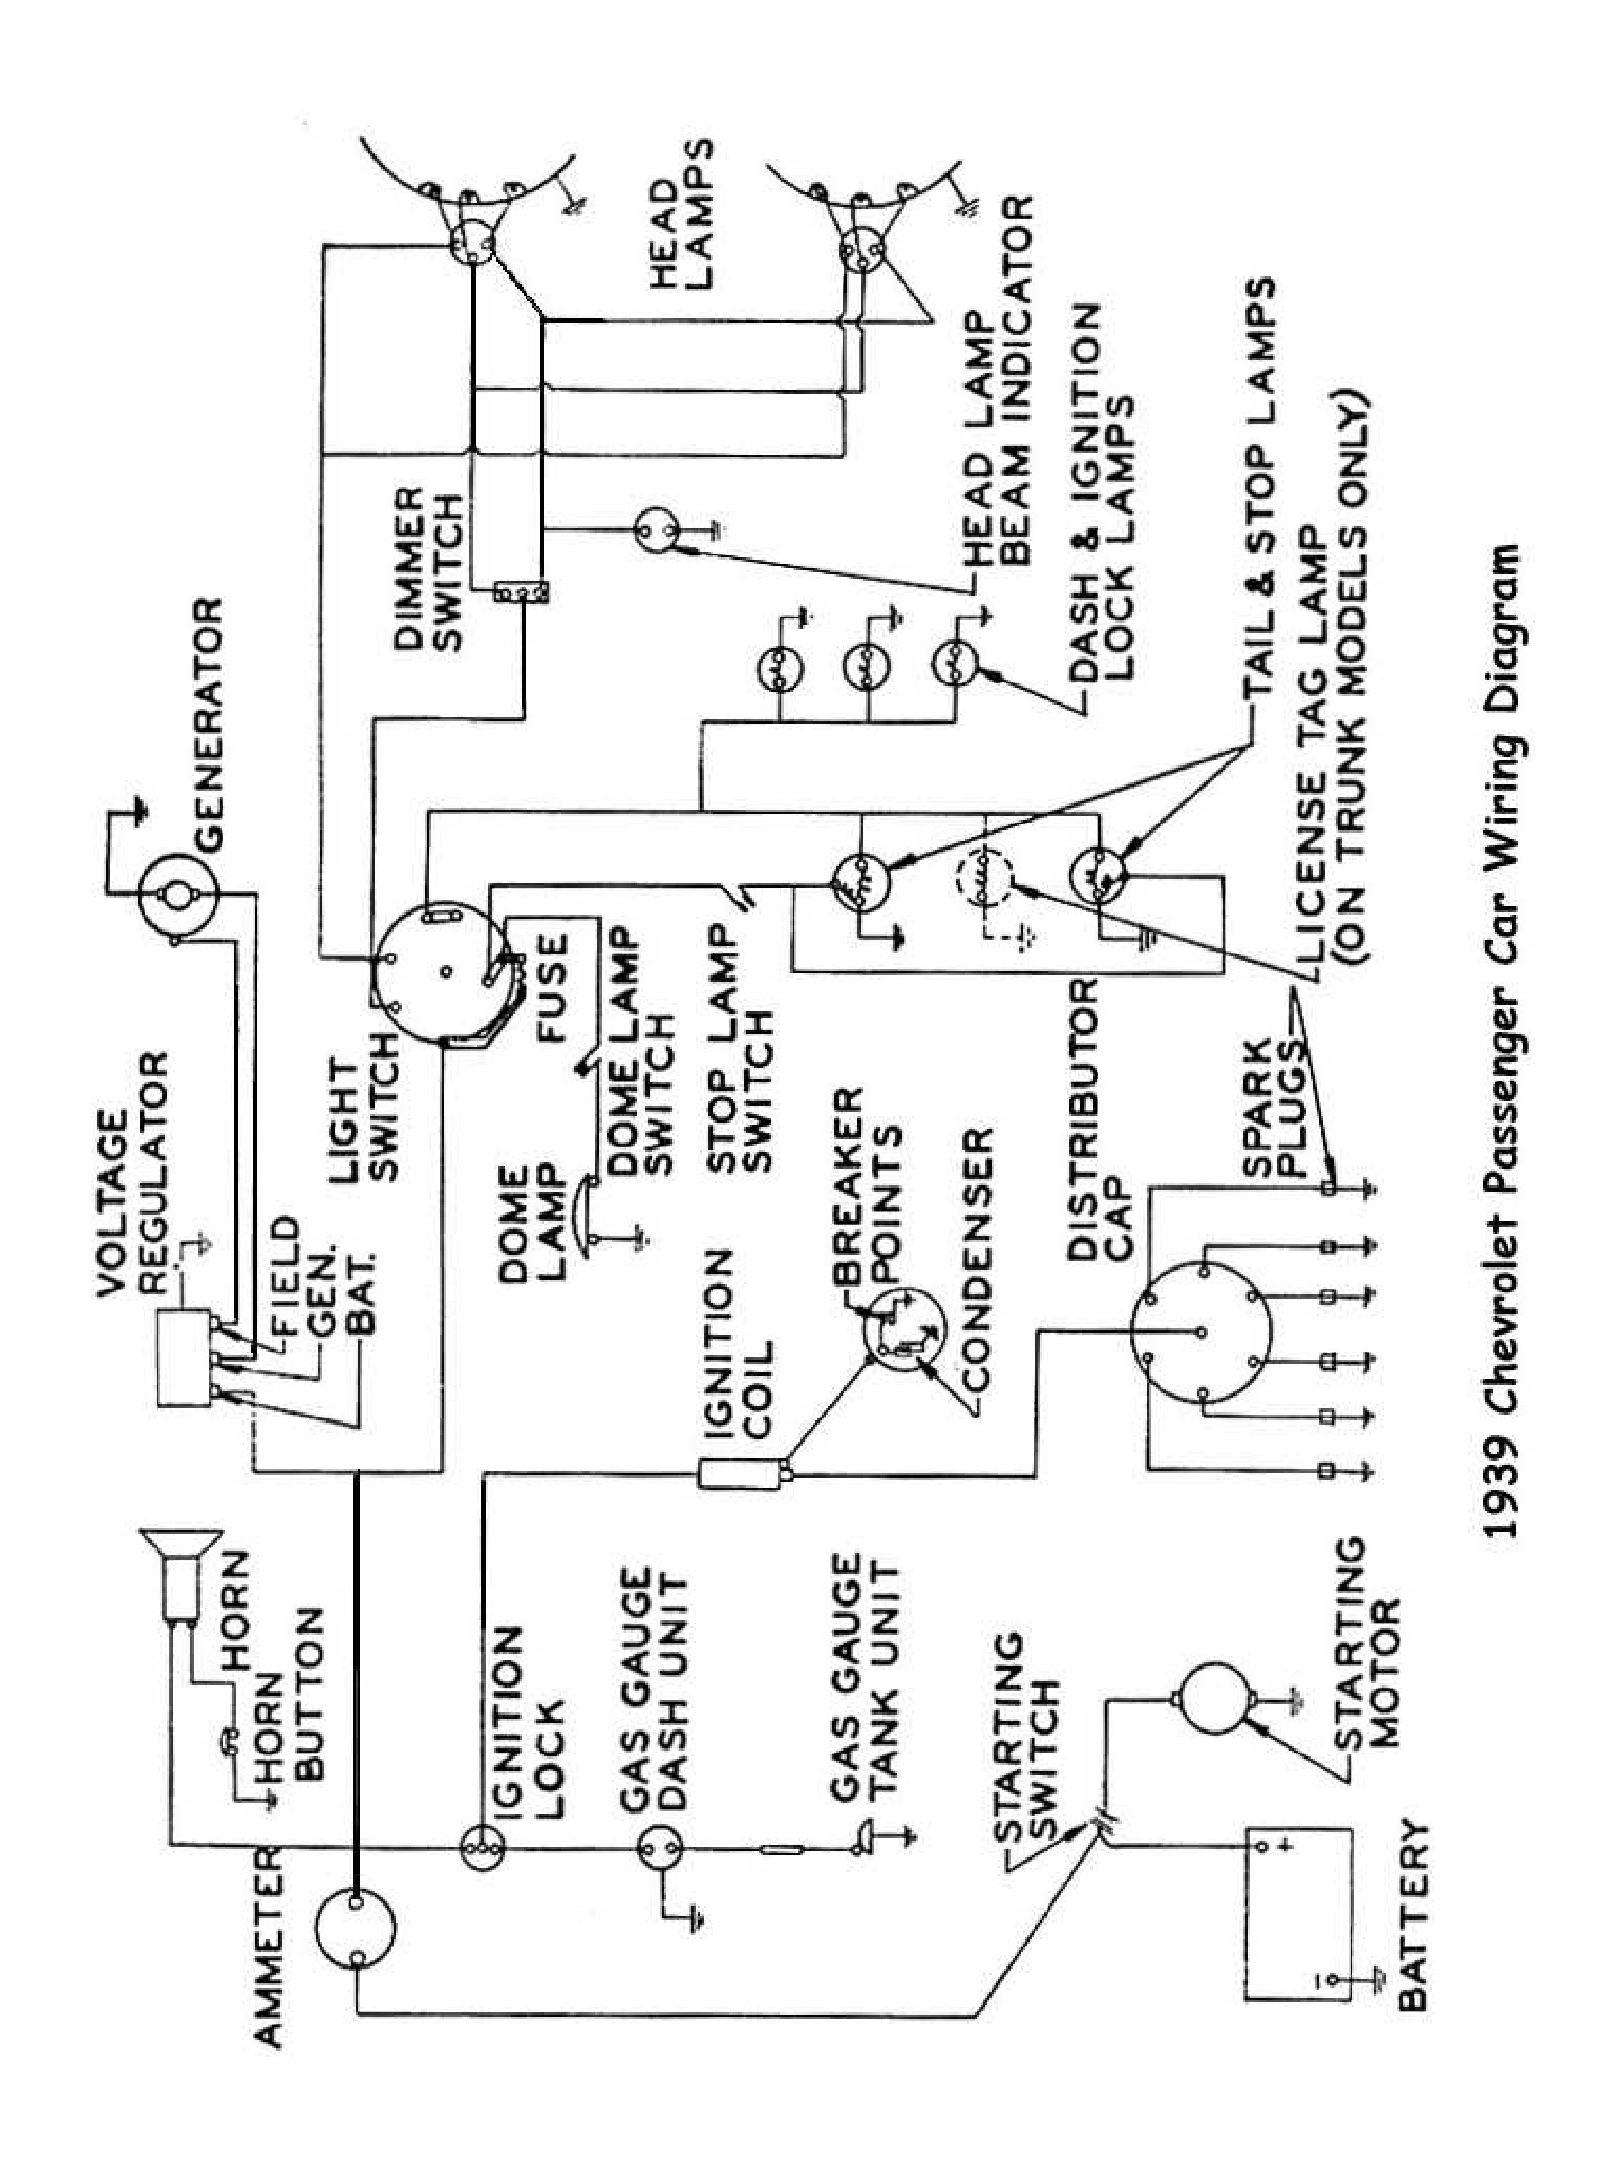 WRG-1635] Wiring Diagram 1951 Chevy Belair on